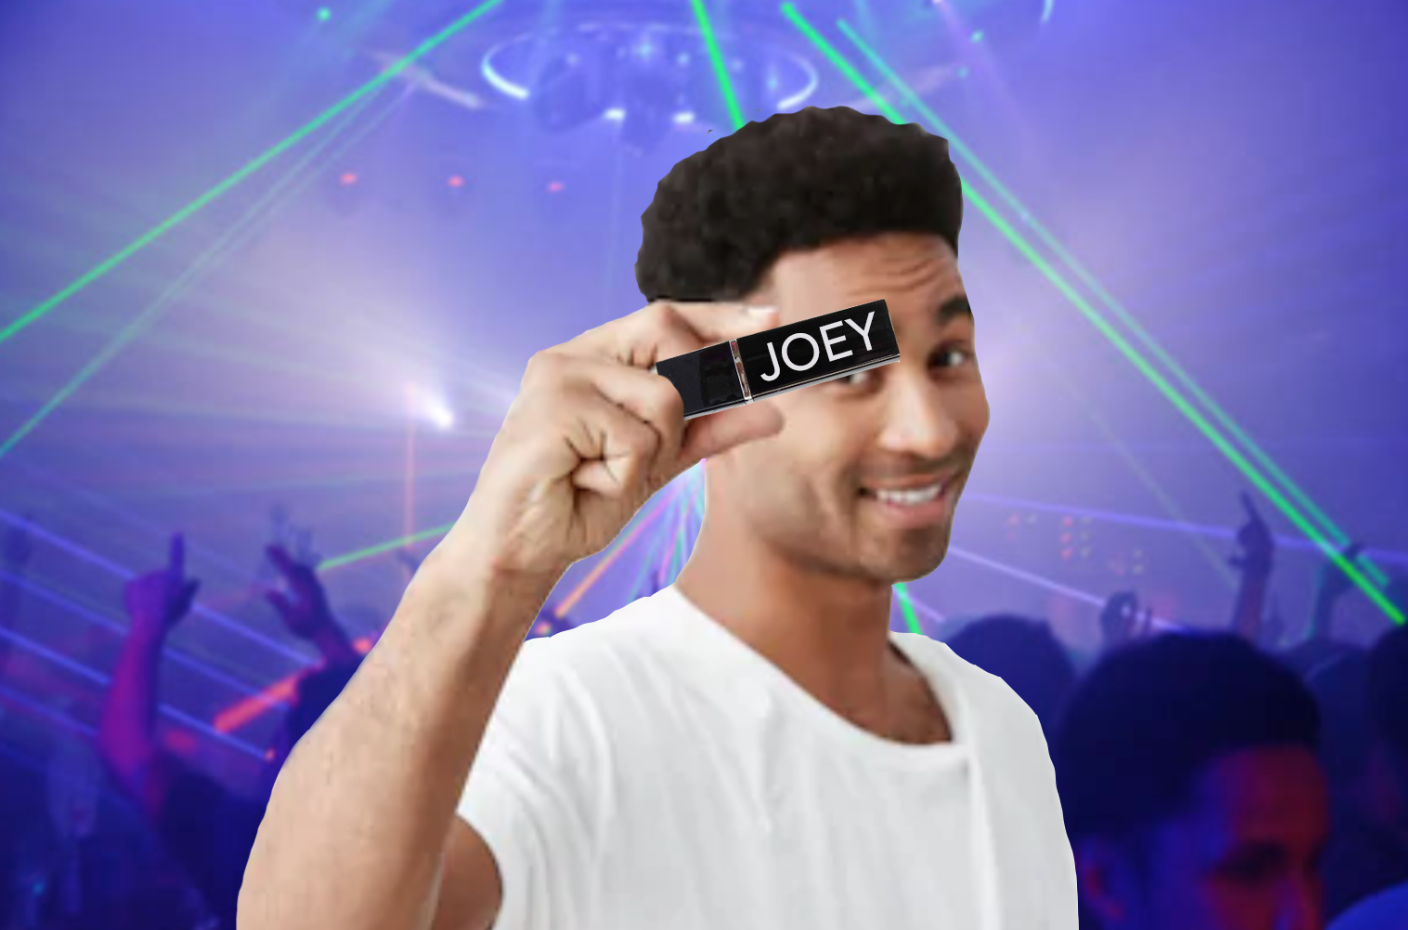 - Platinum gay, Joey, has really outdone himself this weekend by letting his friends know he's leaving ARQ at the premature time of 1am by whipping out a lipstick with his own name on it.  His posse of yet-to-pull friends were understandably gagged, as Joey shockingly announced